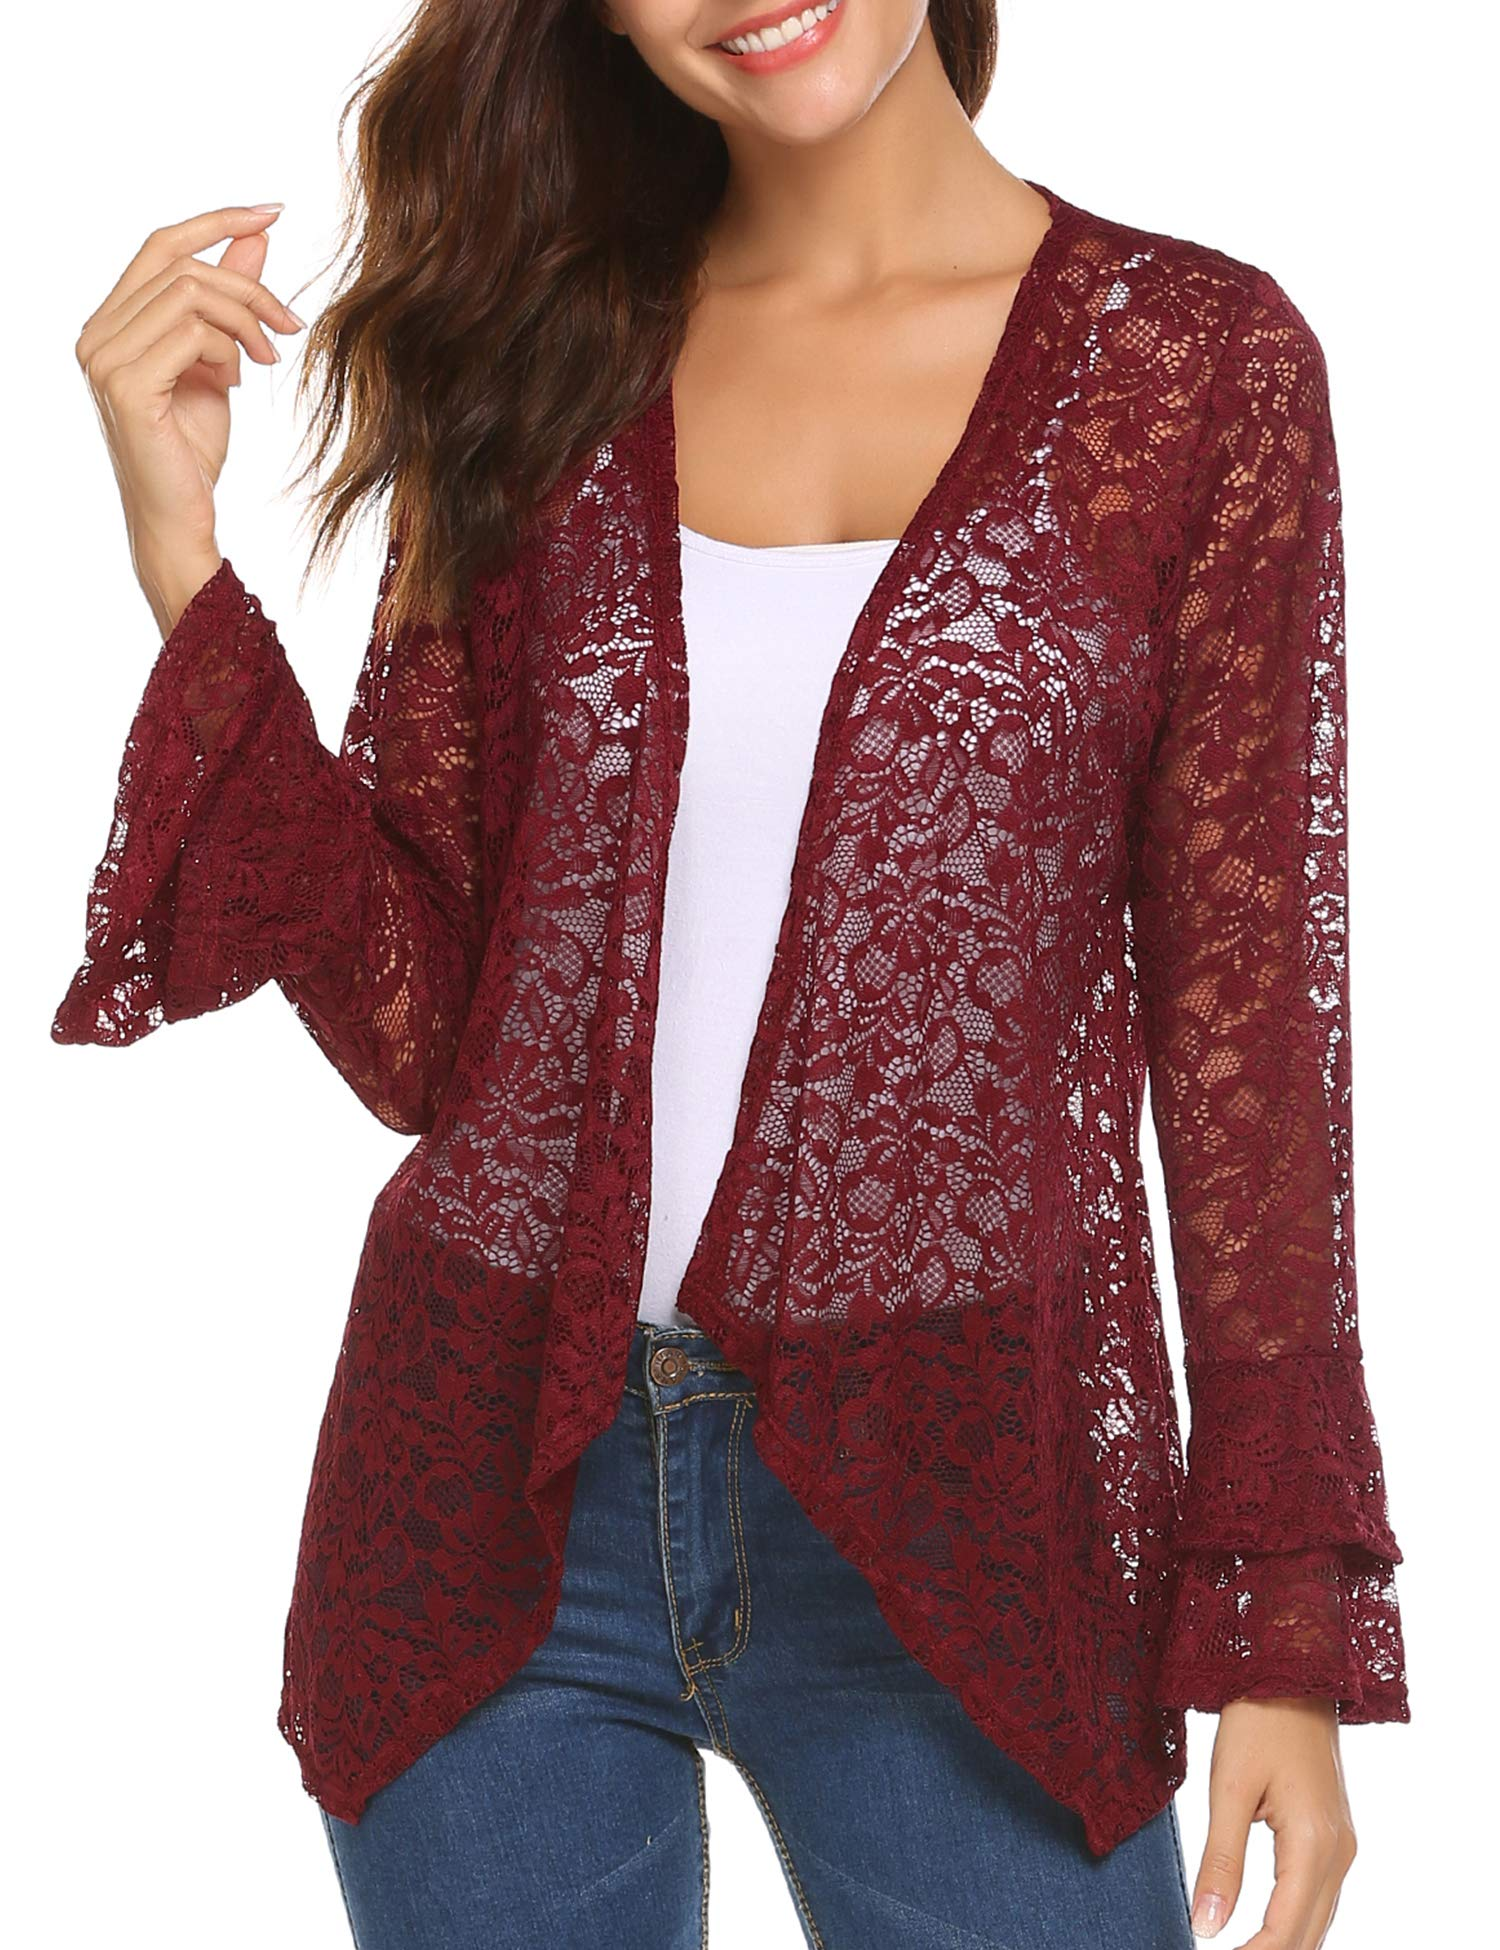 Deawell Women's Long Bell Sleeve Lace Crochet Open Front See Through Cardigan Tops (Wine Red, L)